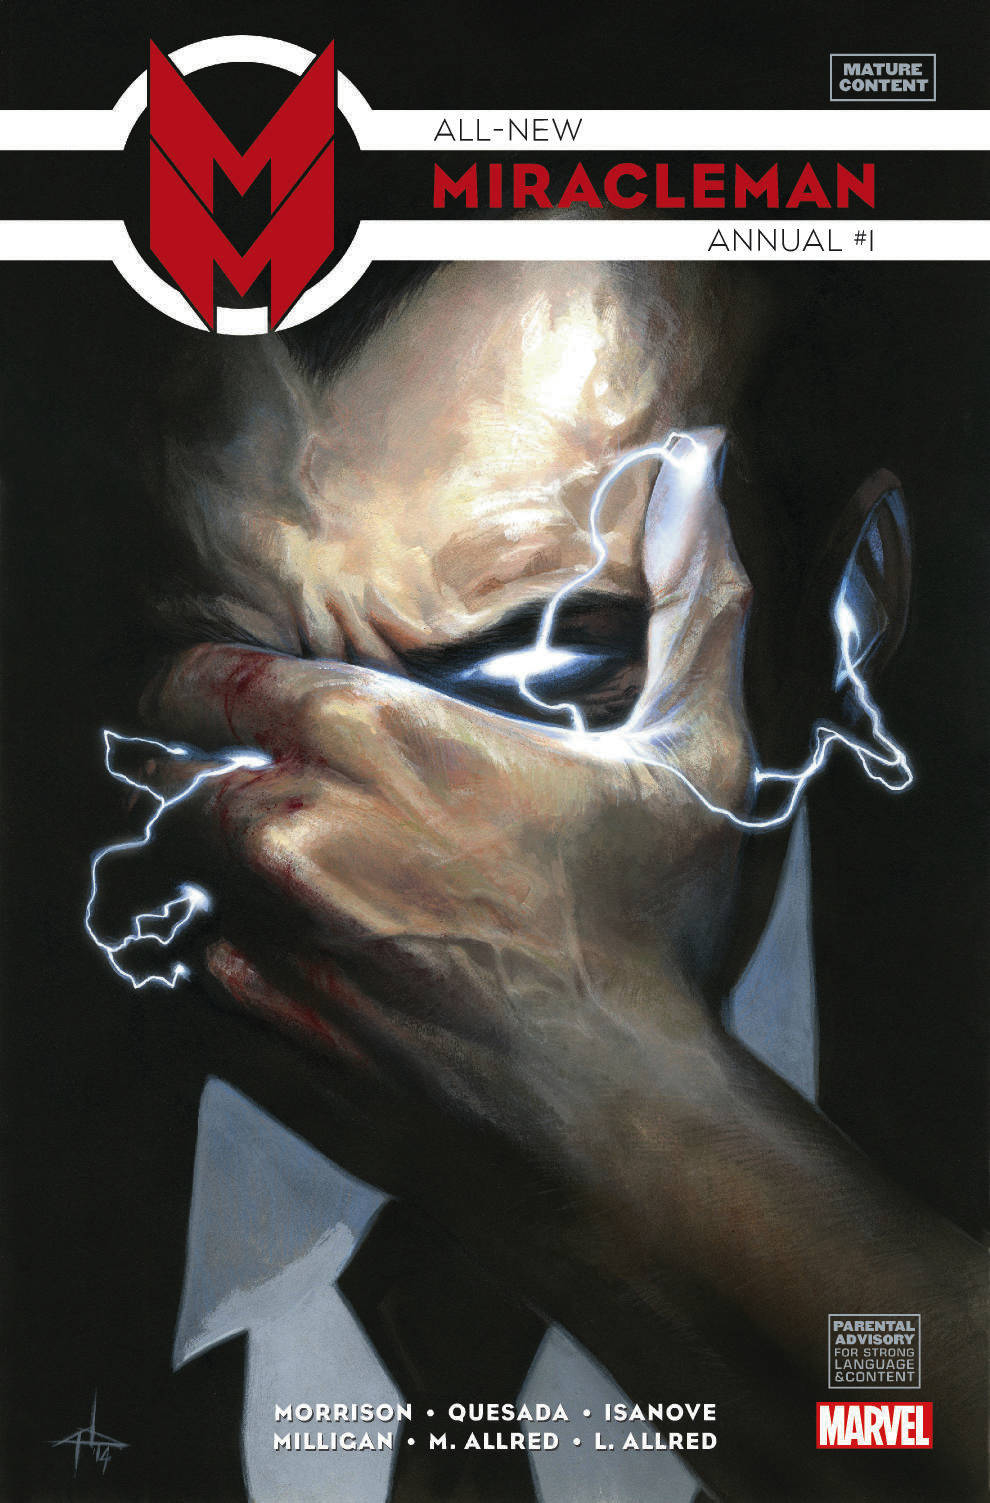 ALL NEW MIRACLEMAN ANNUAL #1